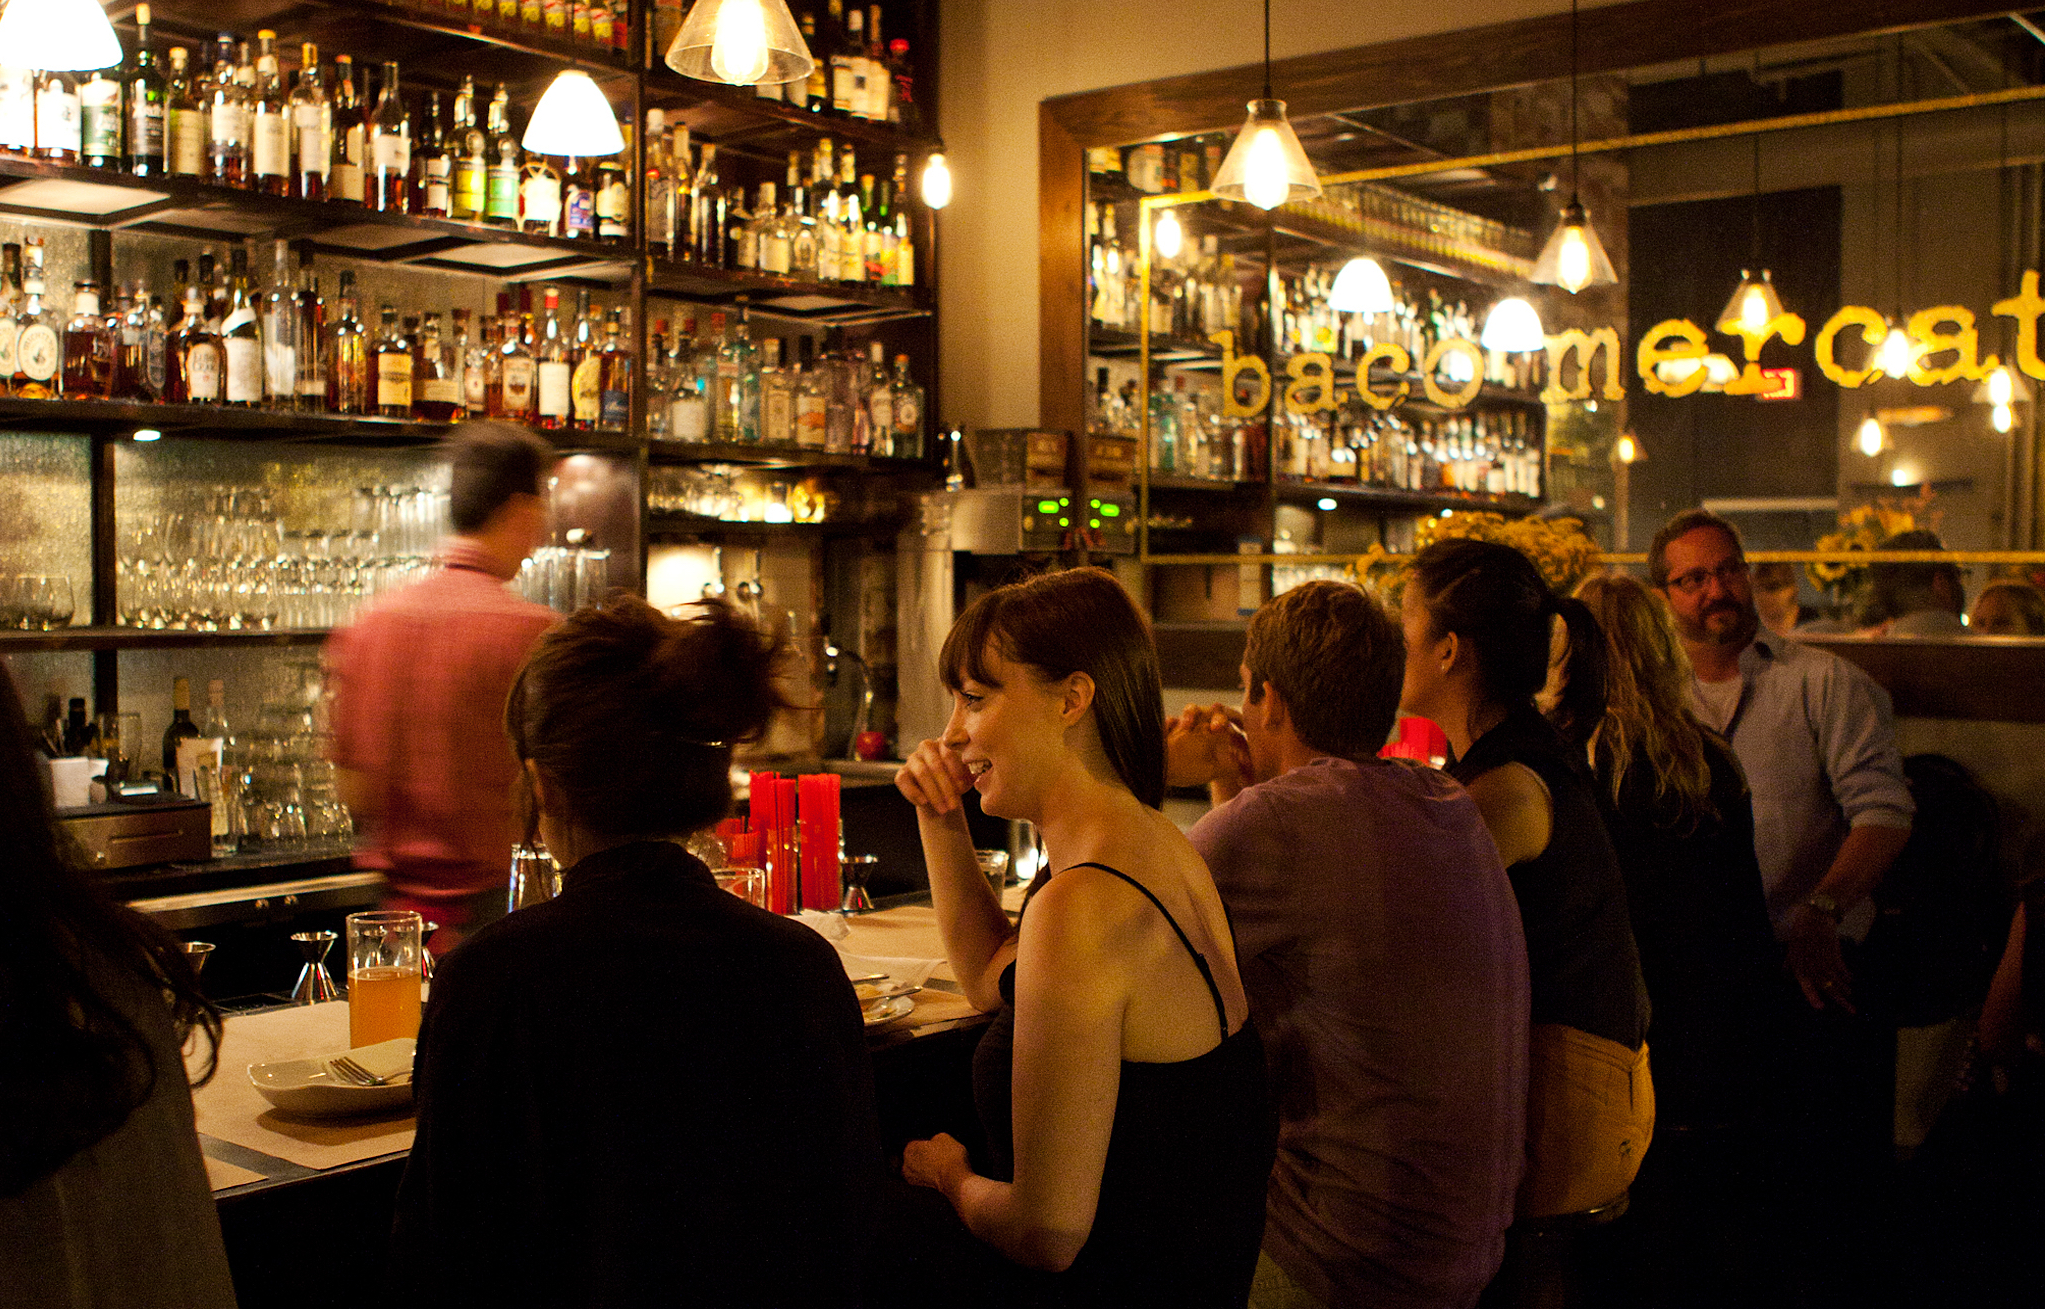 The 12-seat bar at Bäco Mercat is reserved for walk-ins. Come on by!